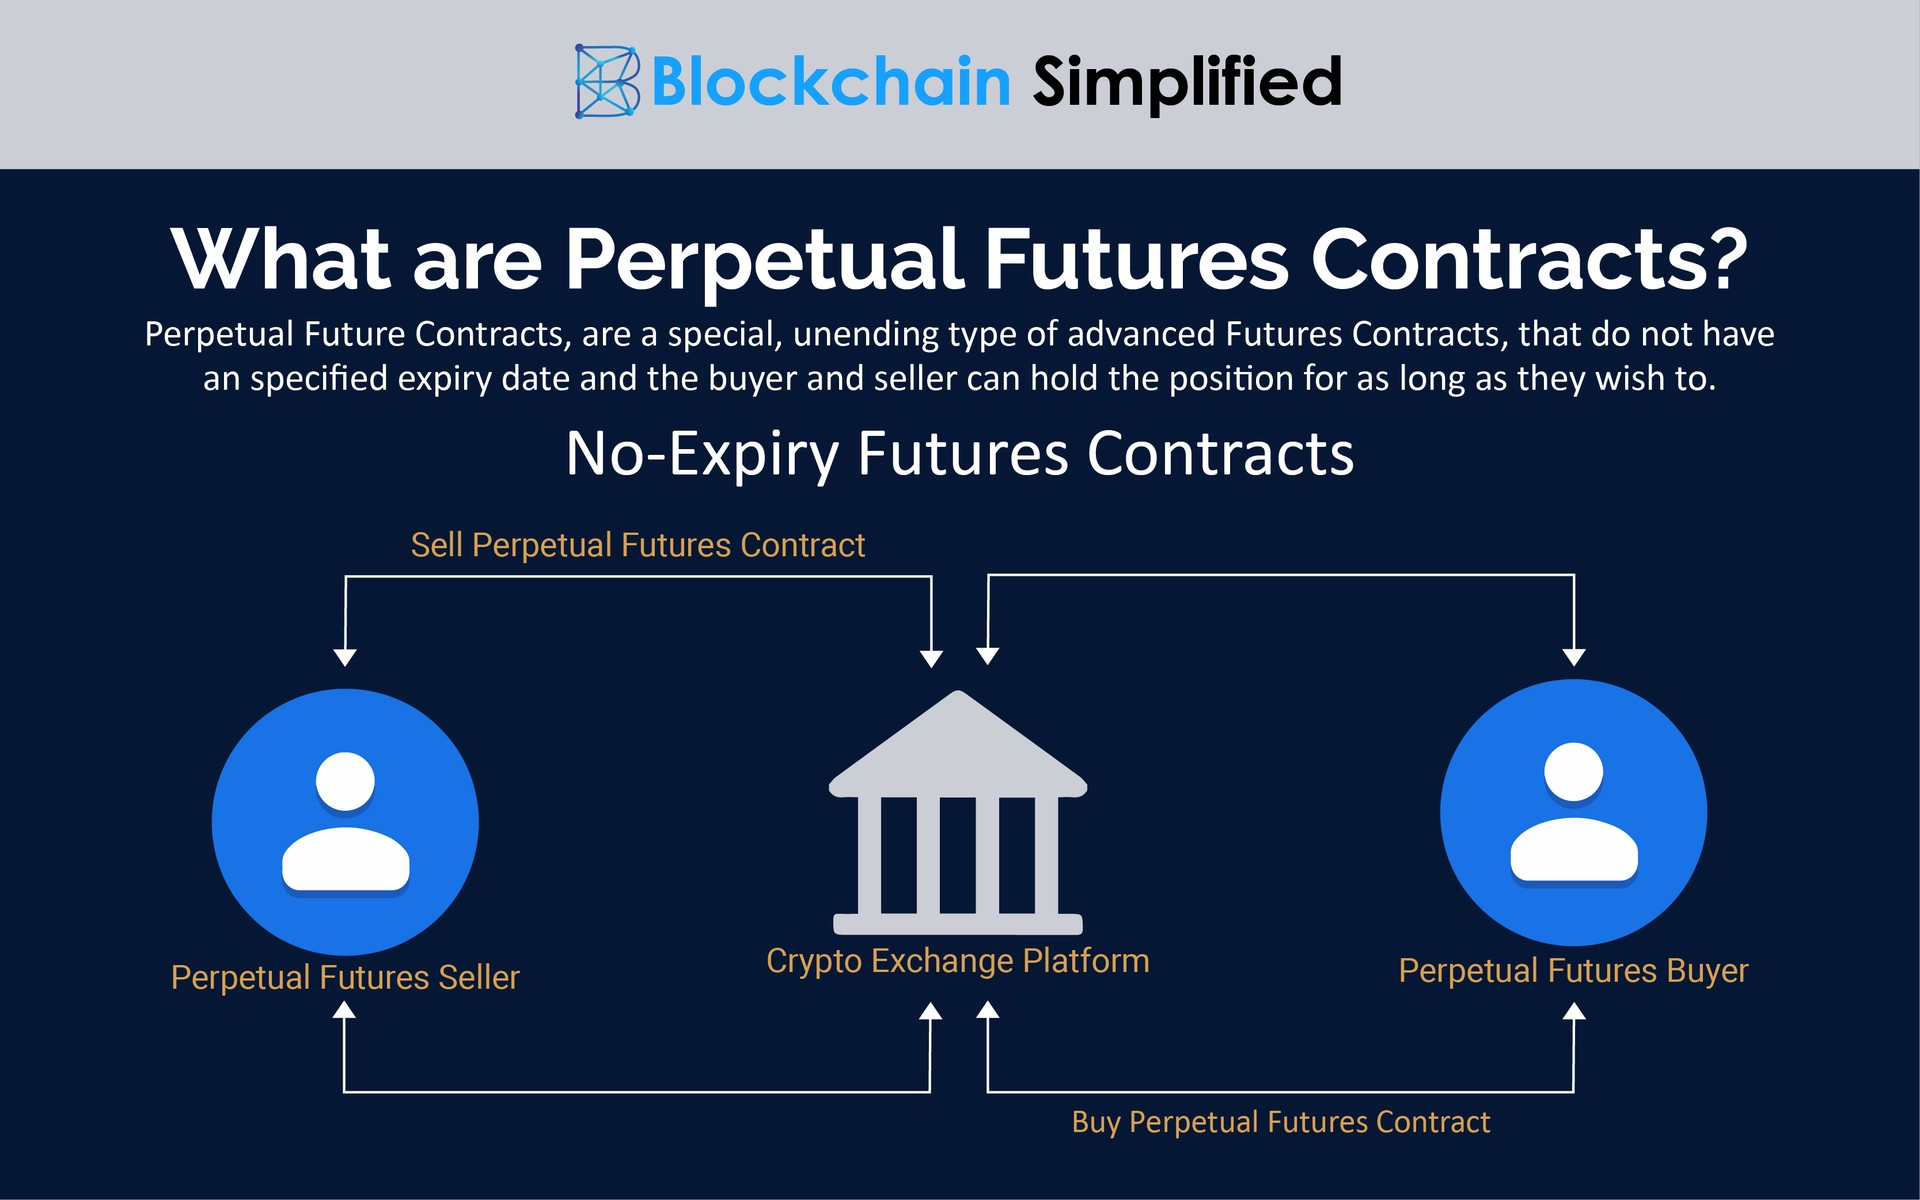 Perpetual Futures Contracts